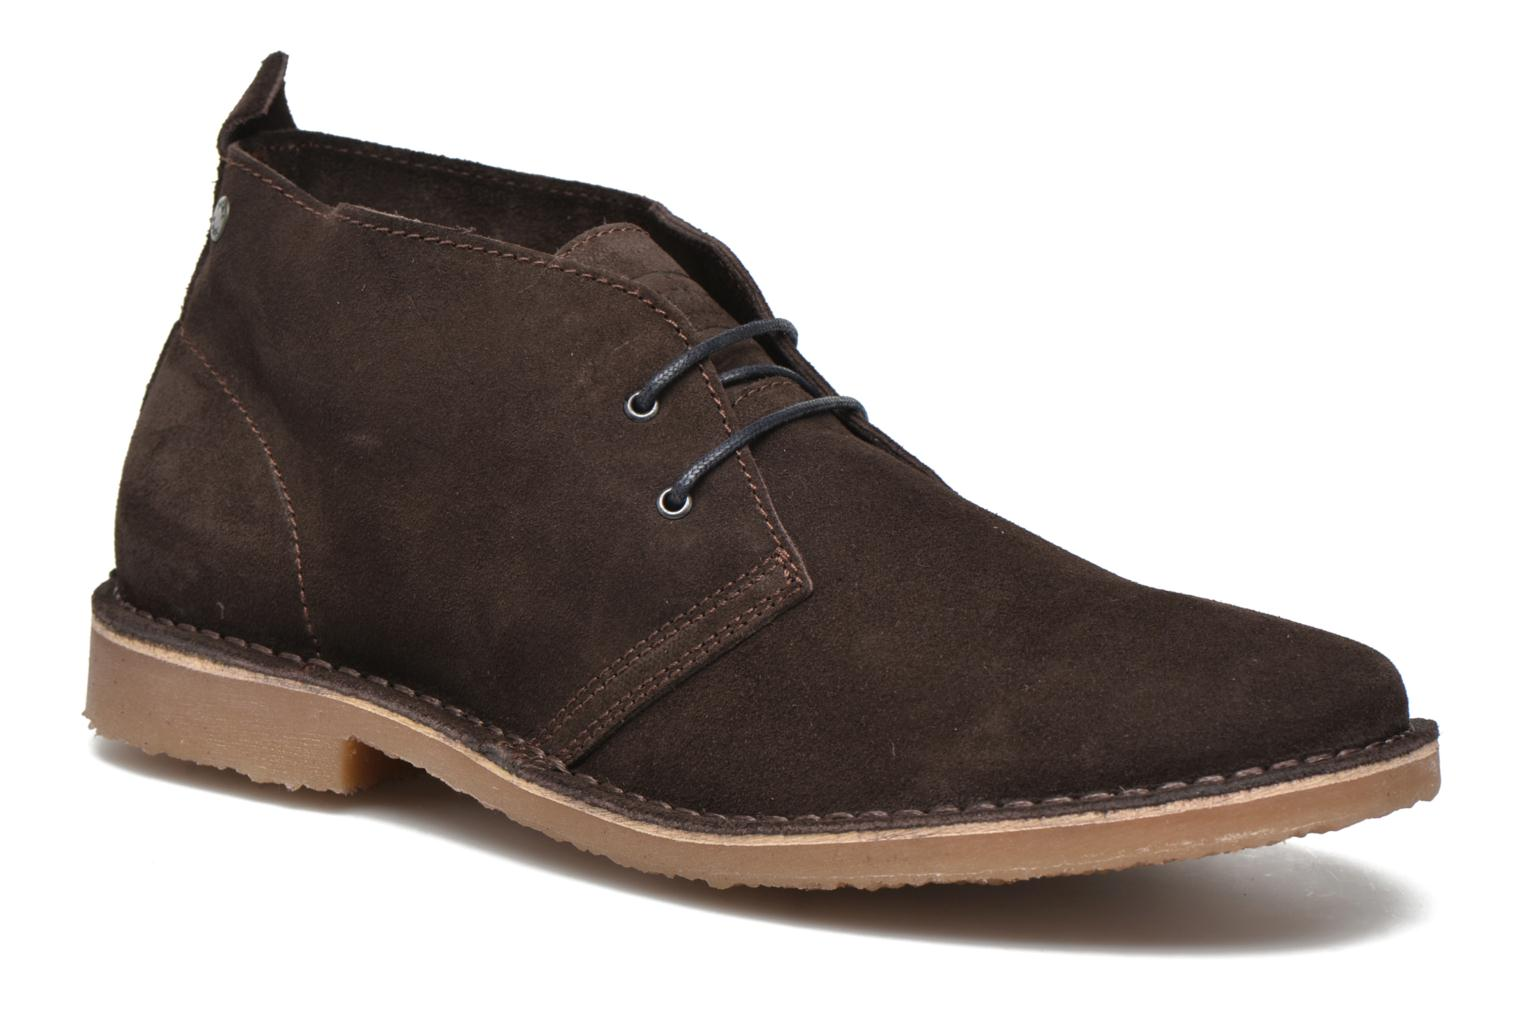 Jack & Jones JJ Gobi Suede Desert Boot (Marron) - Chaussures à lacets chez Sarenza (269164)